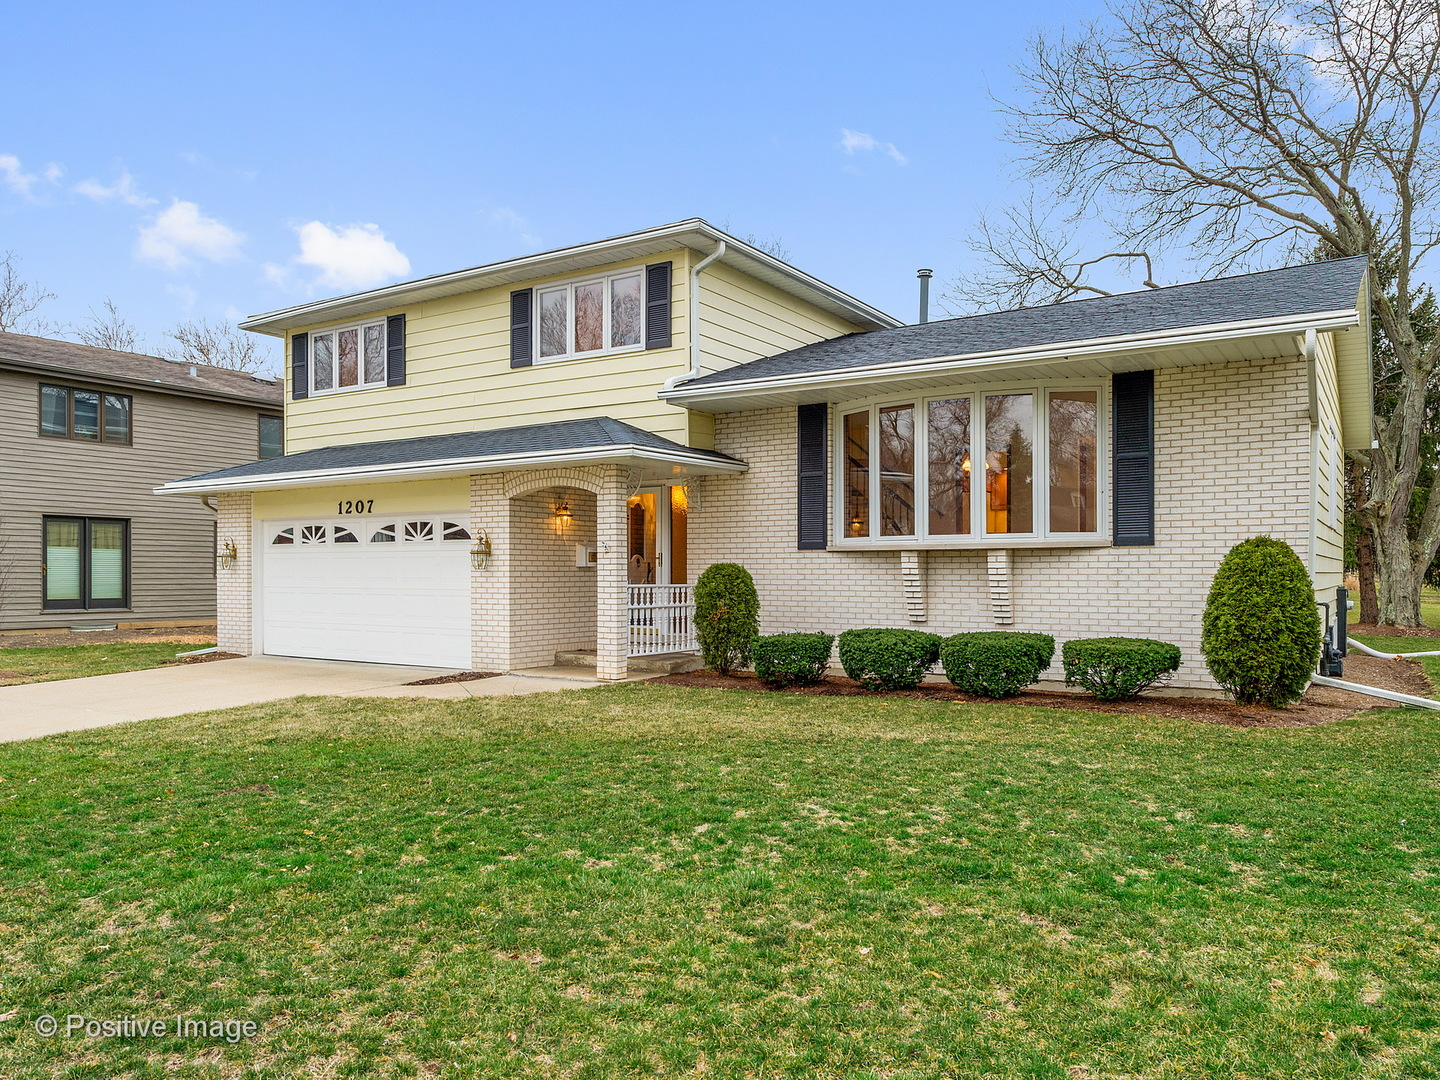 1207 60TH PLACE, DOWNERS GROVE, IL 60516